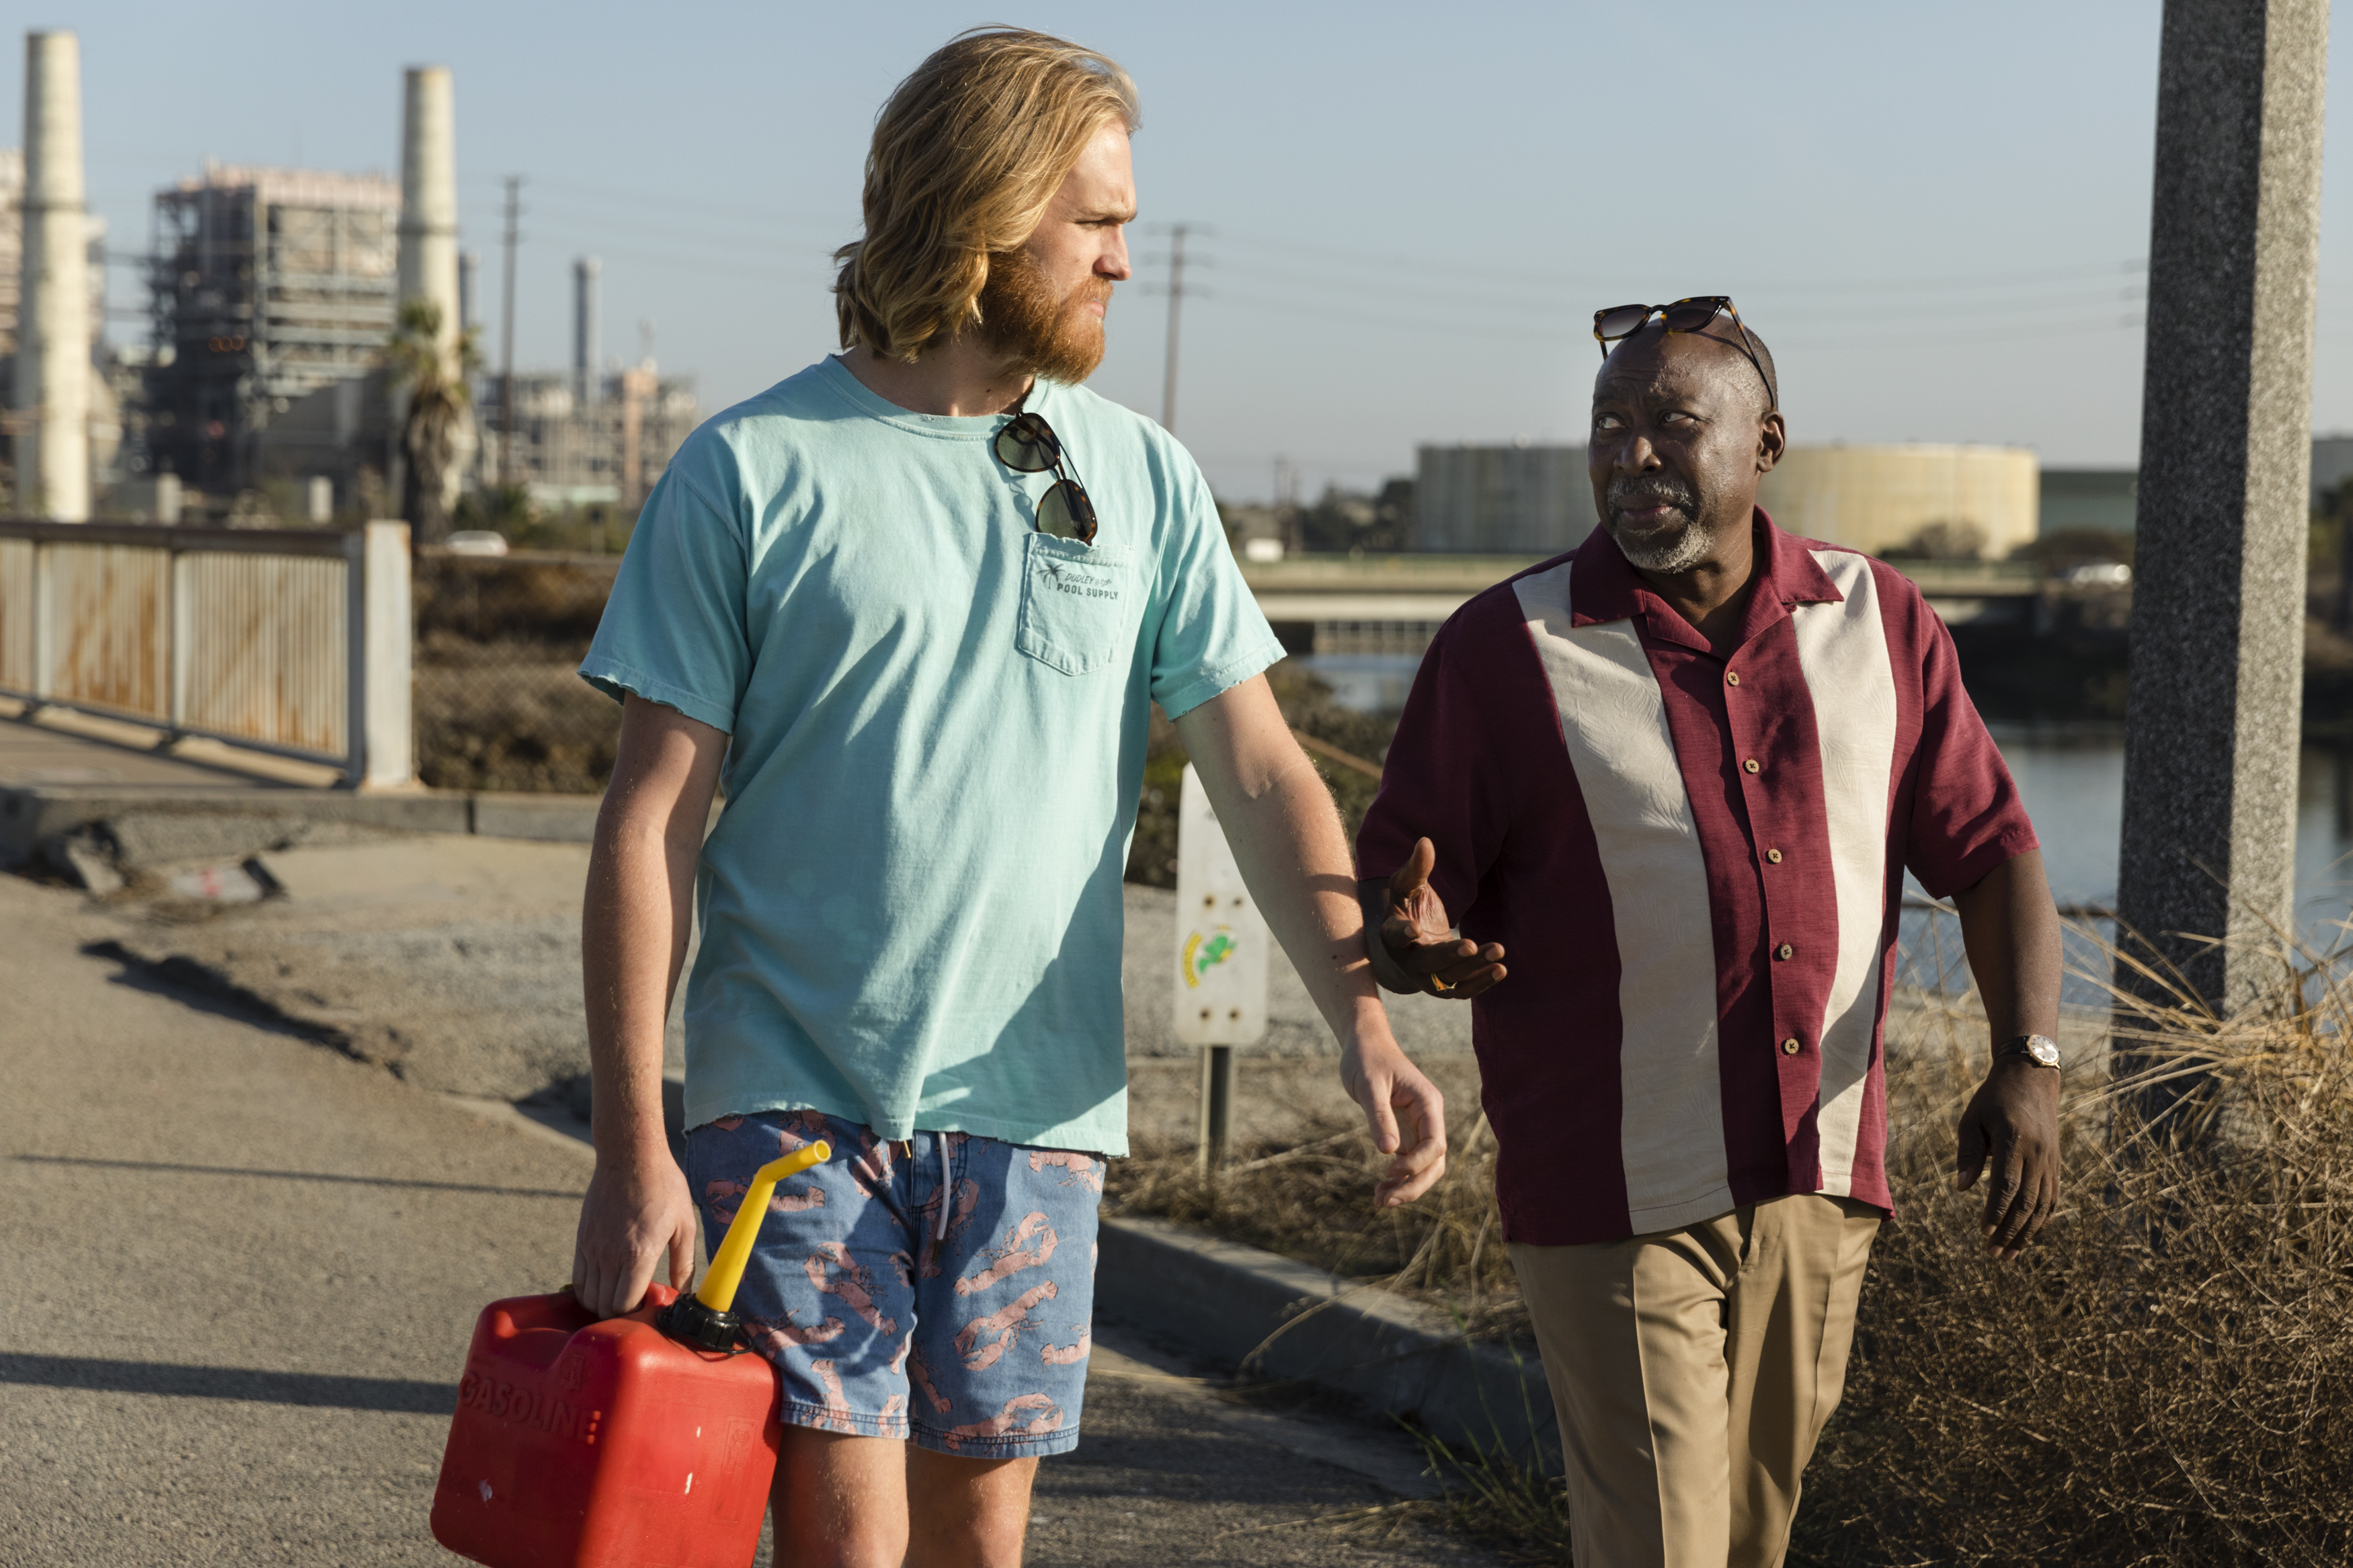 AMC's Lodge 49 is a quest for a better world, set amid the ruins of capitalism